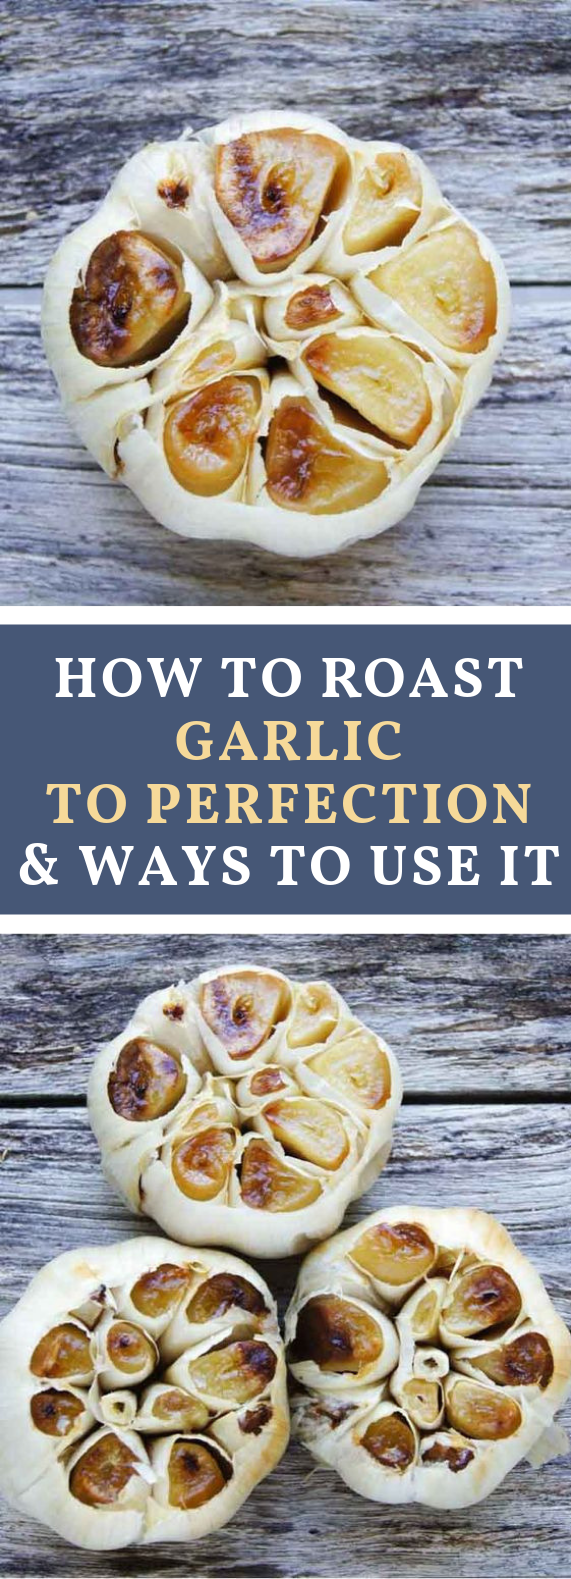 HOW TO ROAST GARLIC AND STAY HEALTHY ALL YEAR #Vegan #glutenfree